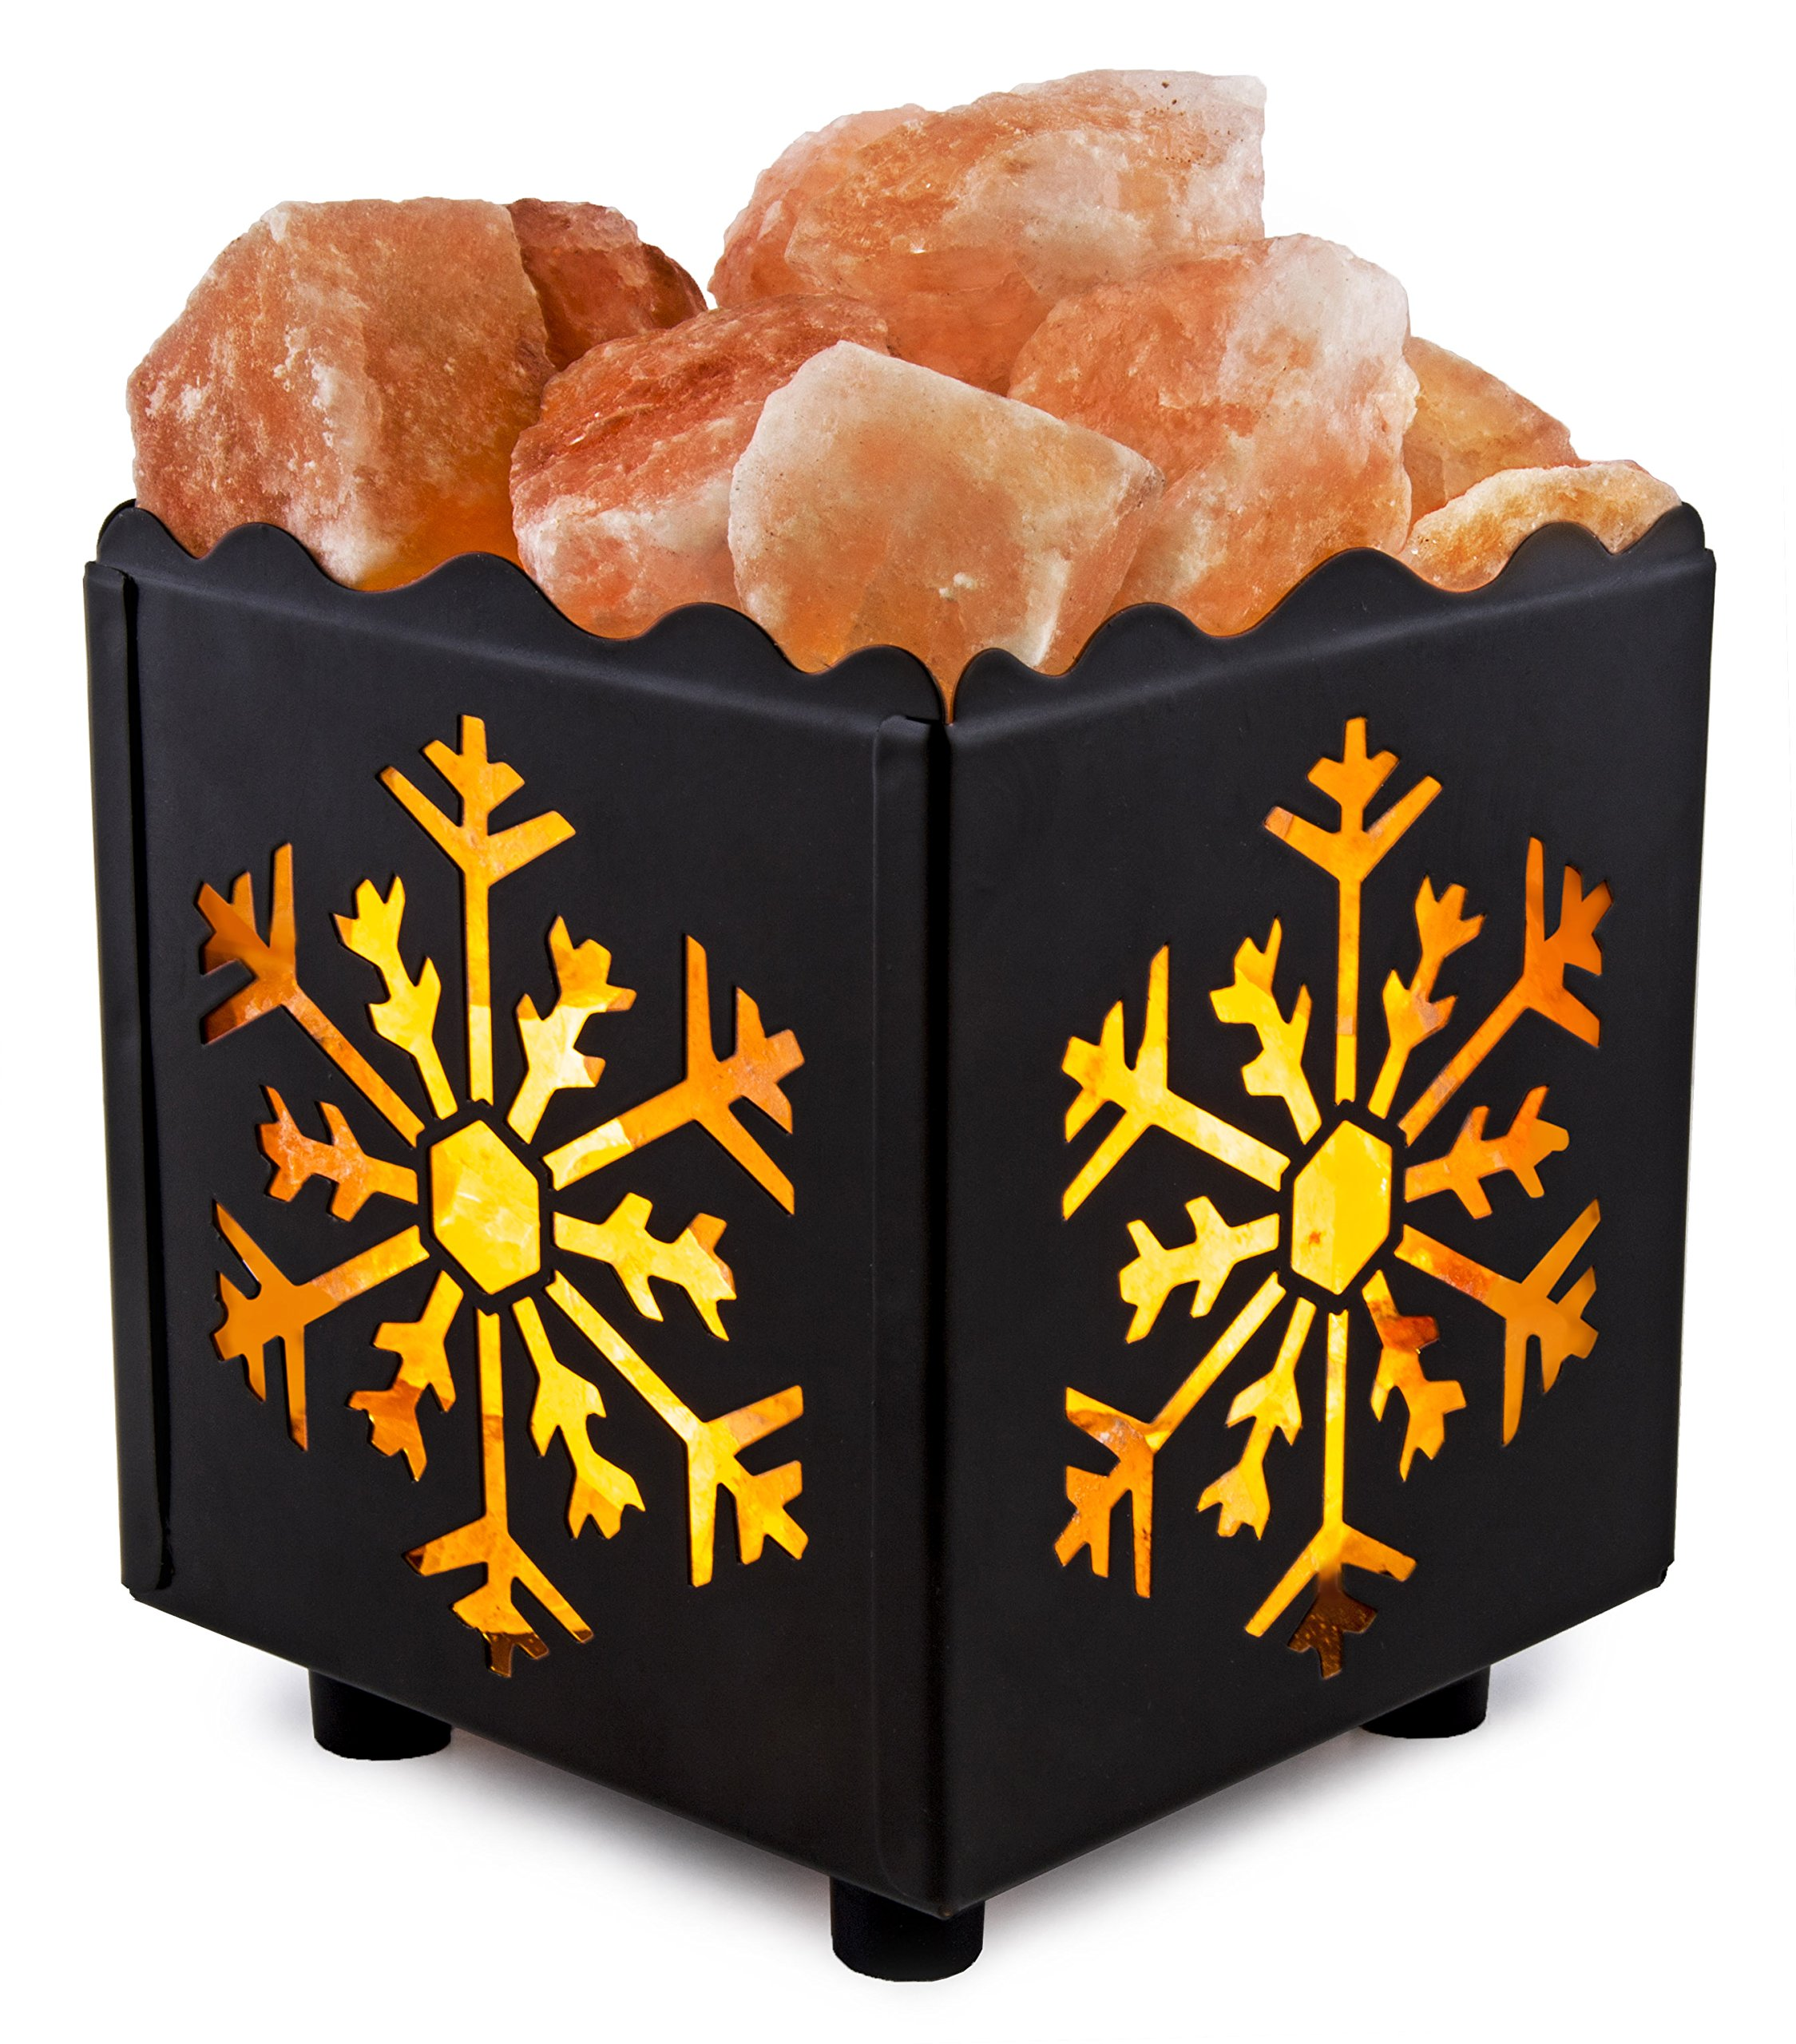 Crystal Decor Natural Himalayan Salt Lamp in Snowflake Design Metal Basket wi... Chickadee ...